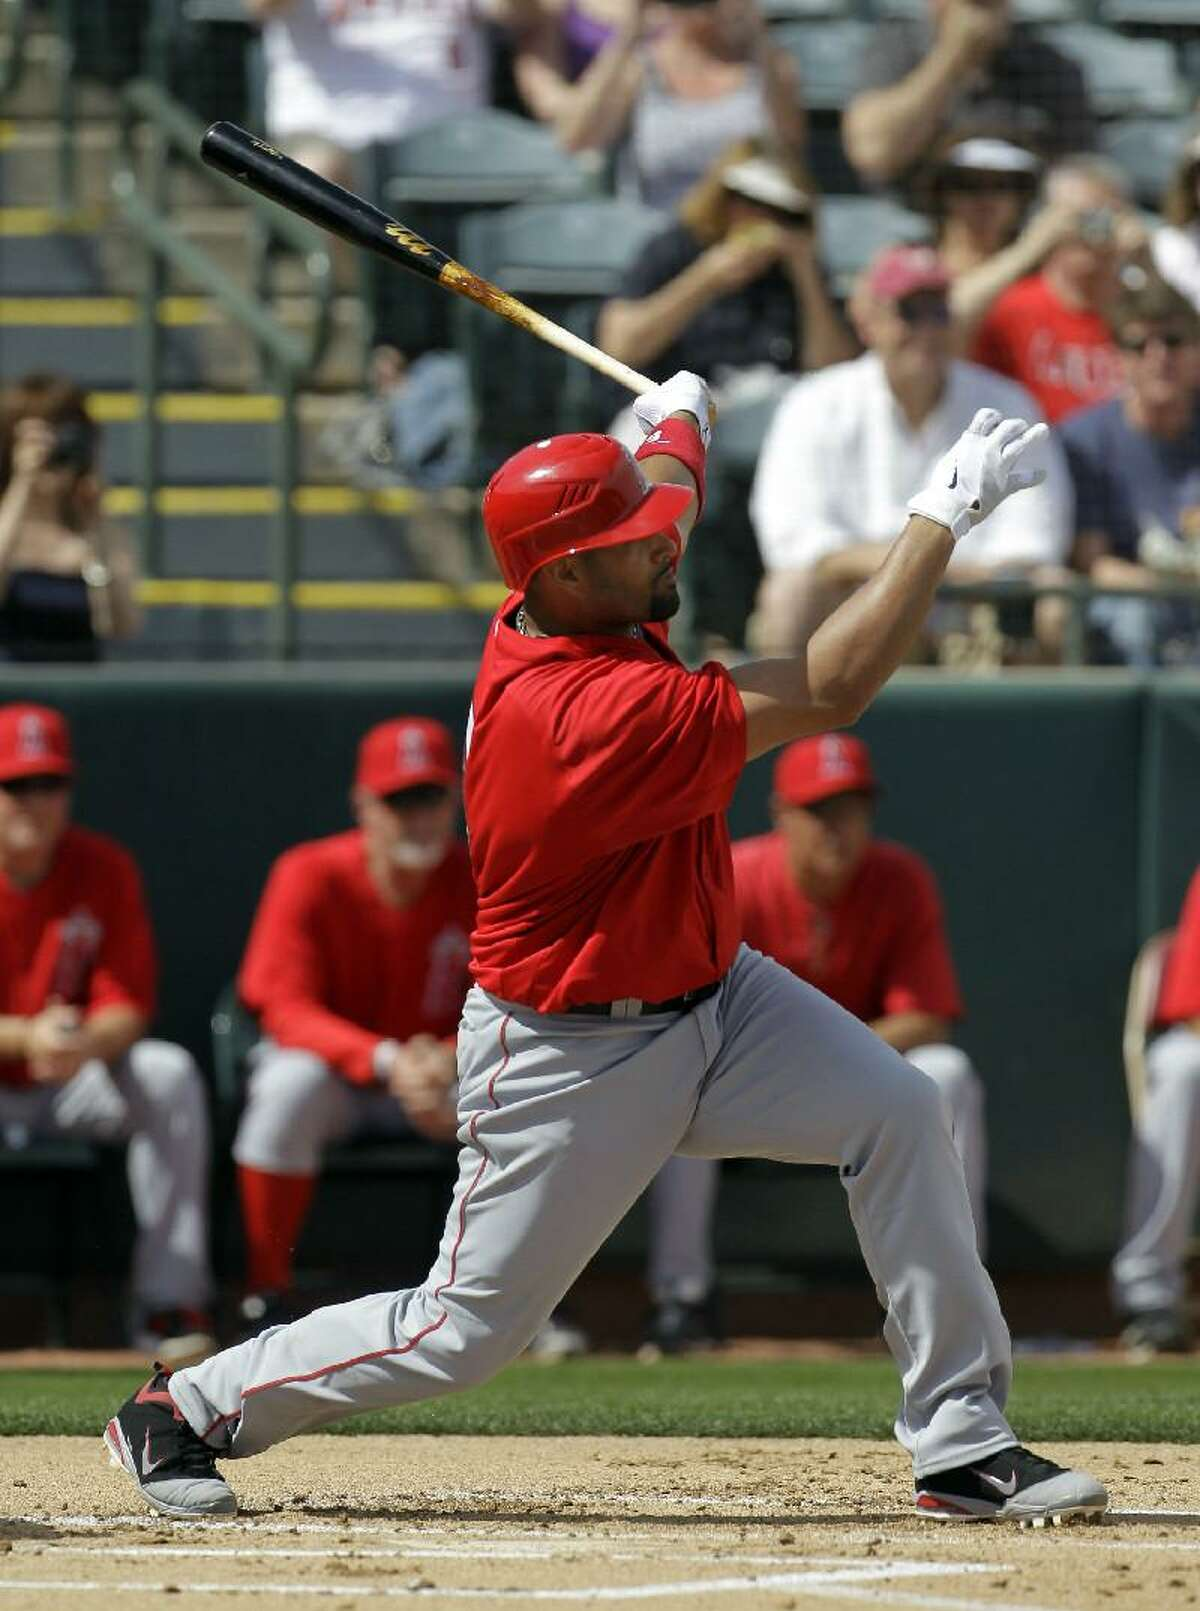 ASSOCIATED PRESS In this March 5 file photo, Los Angeles Angels first baseman Albert Pujols is shown at bat during a spring training game against the Oakland Athletics in Phoenix. Expect an extra wild year in baseball.